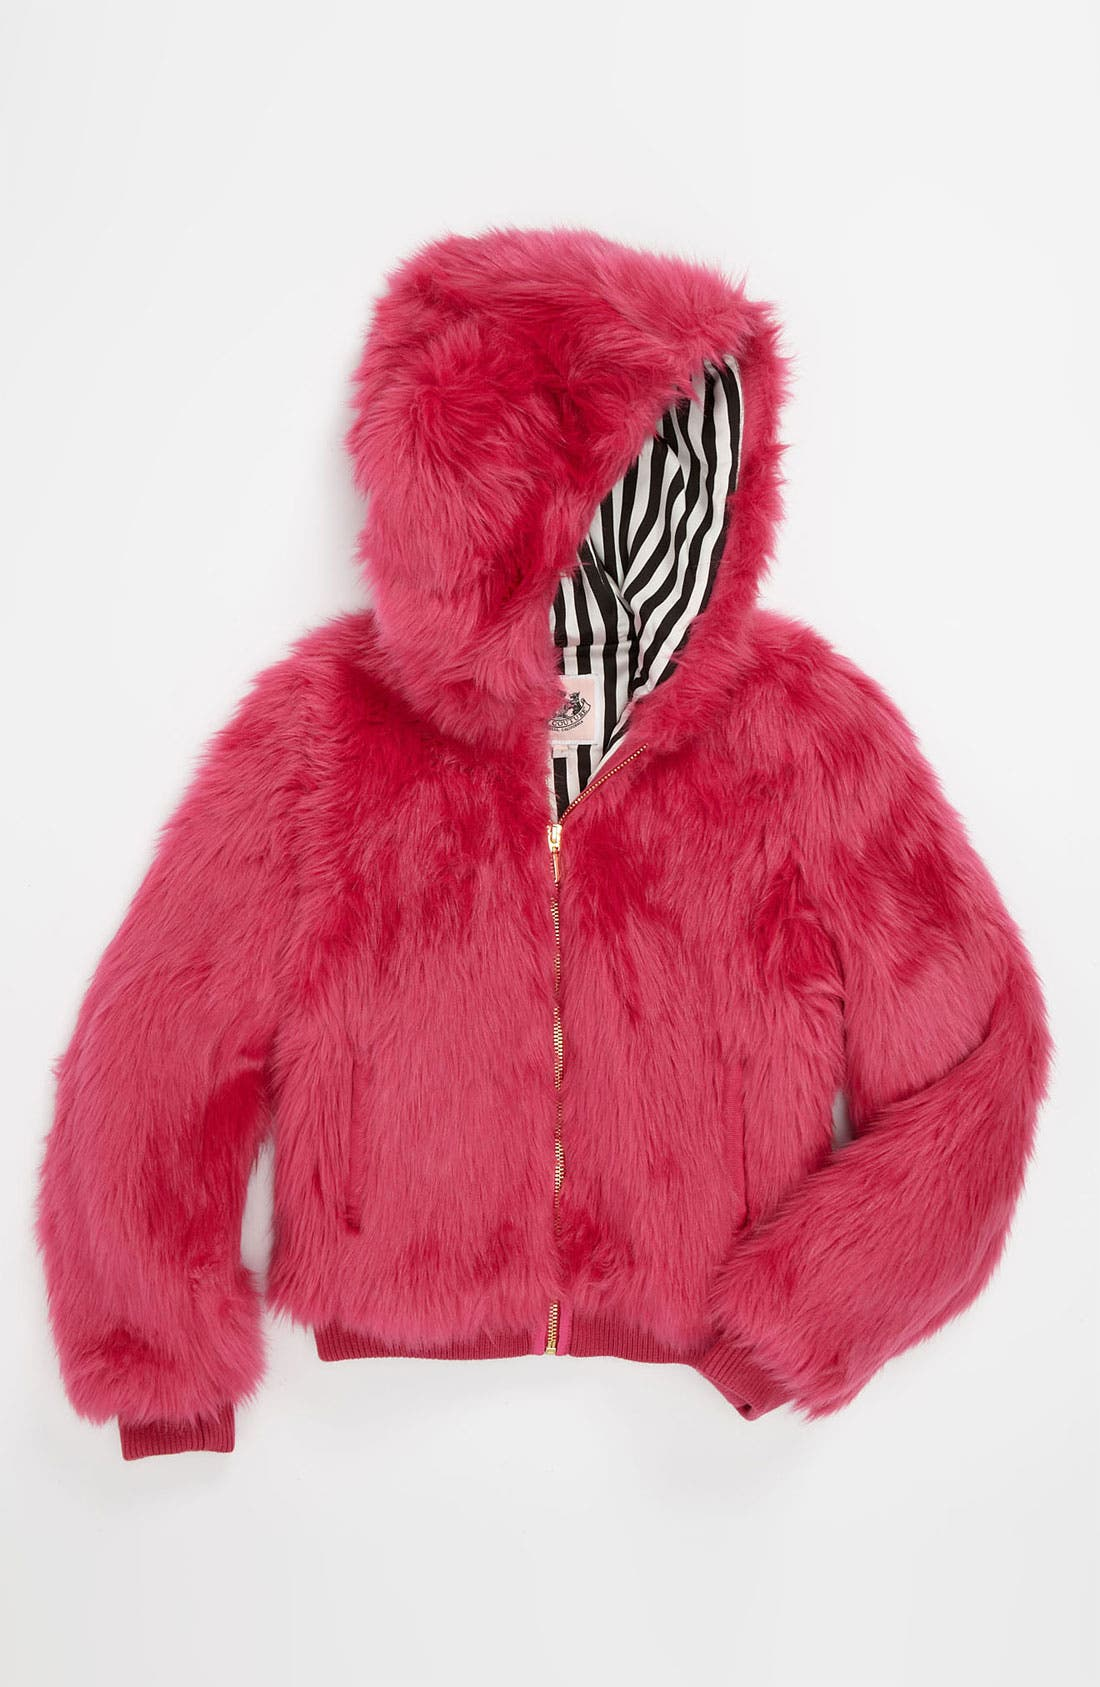 Alternate Image 1 Selected - Juicy Couture Faux Fur Bomber Jacket (Little Girls & Big Girls)